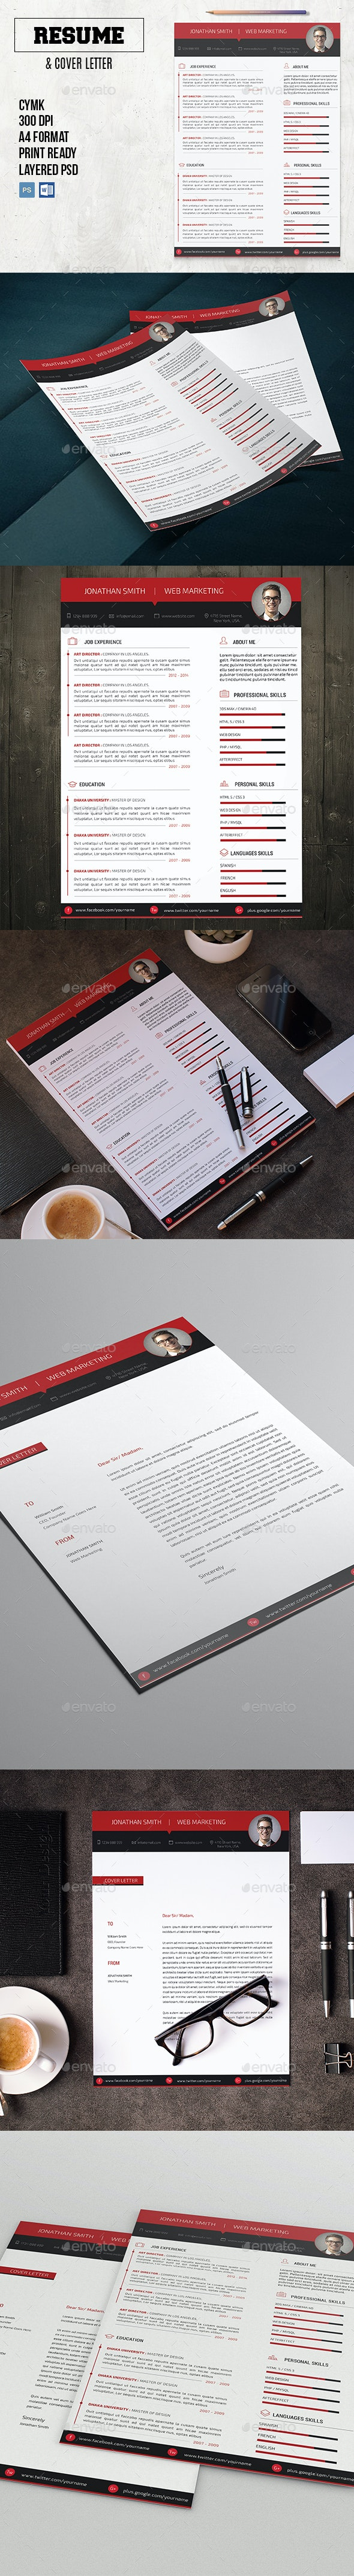 The Resume And Cover Letter  - Resumes Stationery